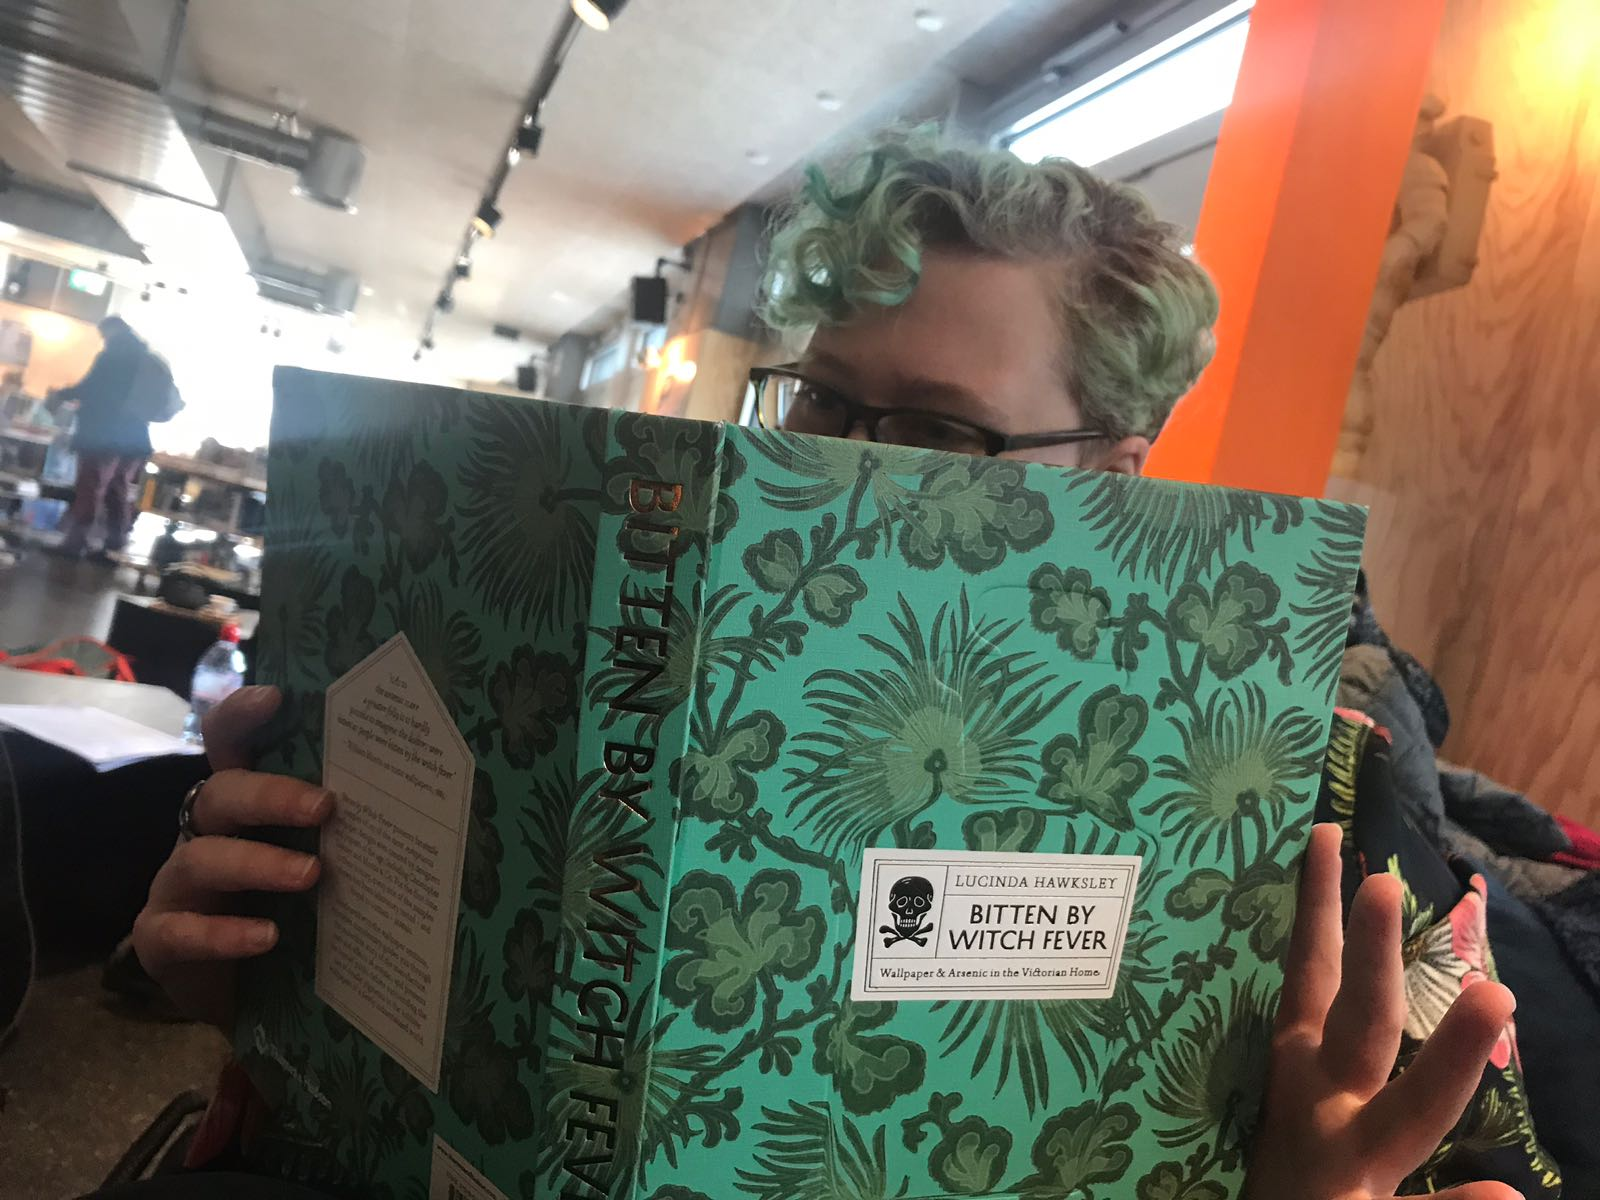 A person with curly green hair, reading a book with a green, flowery cover.